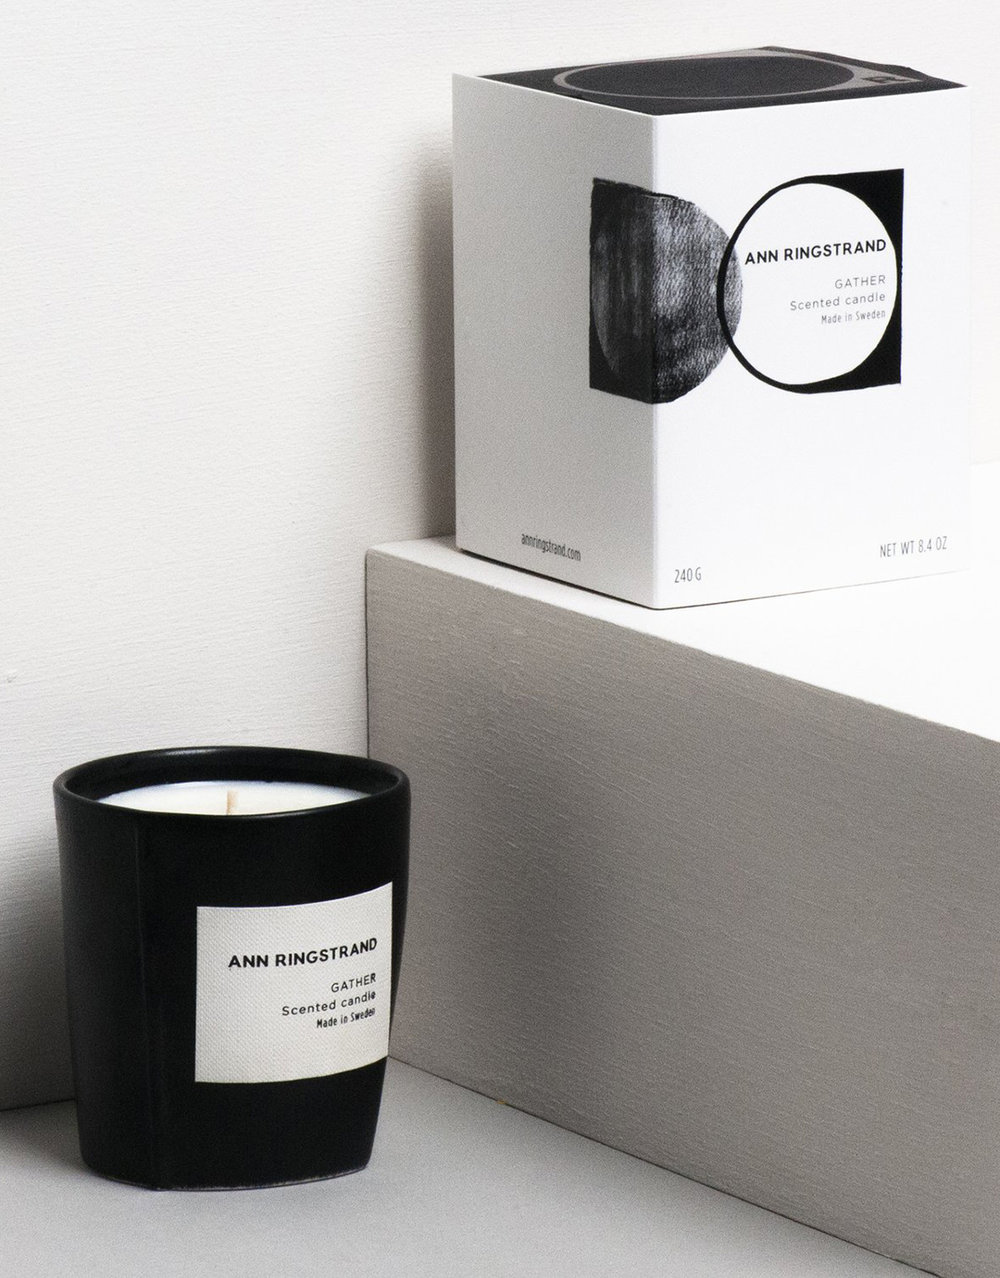 230_Scented_candle_Gather_1500x1500.jpg